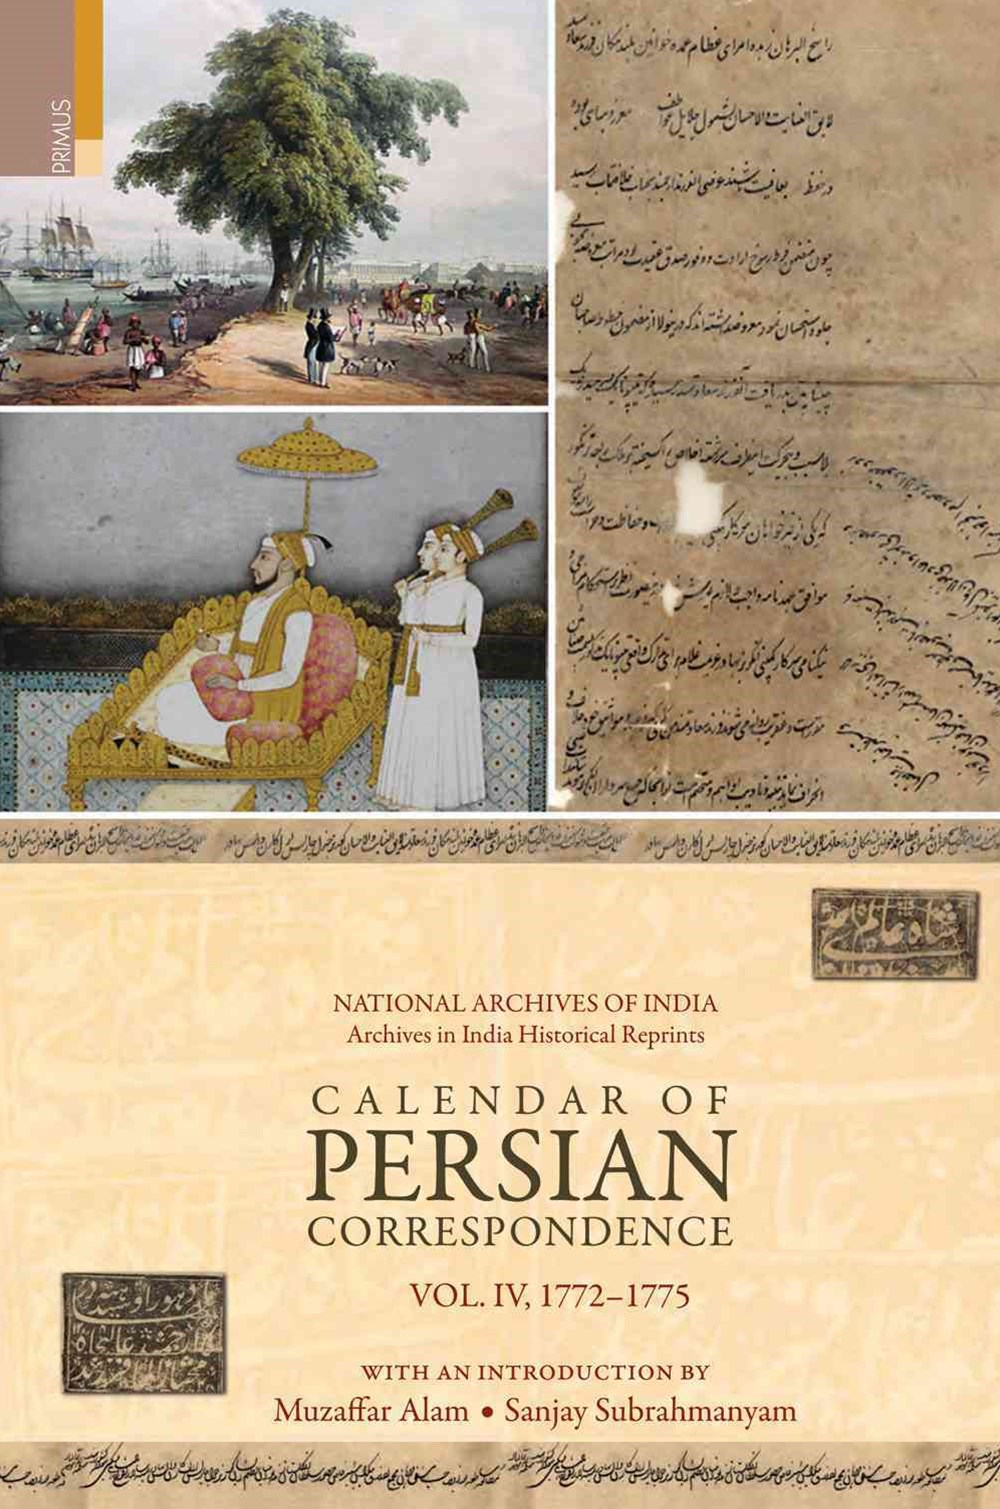 Calendar of Persian Correspondence with and Introduction by Muzaffar Alam and Sanjay Subrahmanyam, Volume IV: 1772-1775